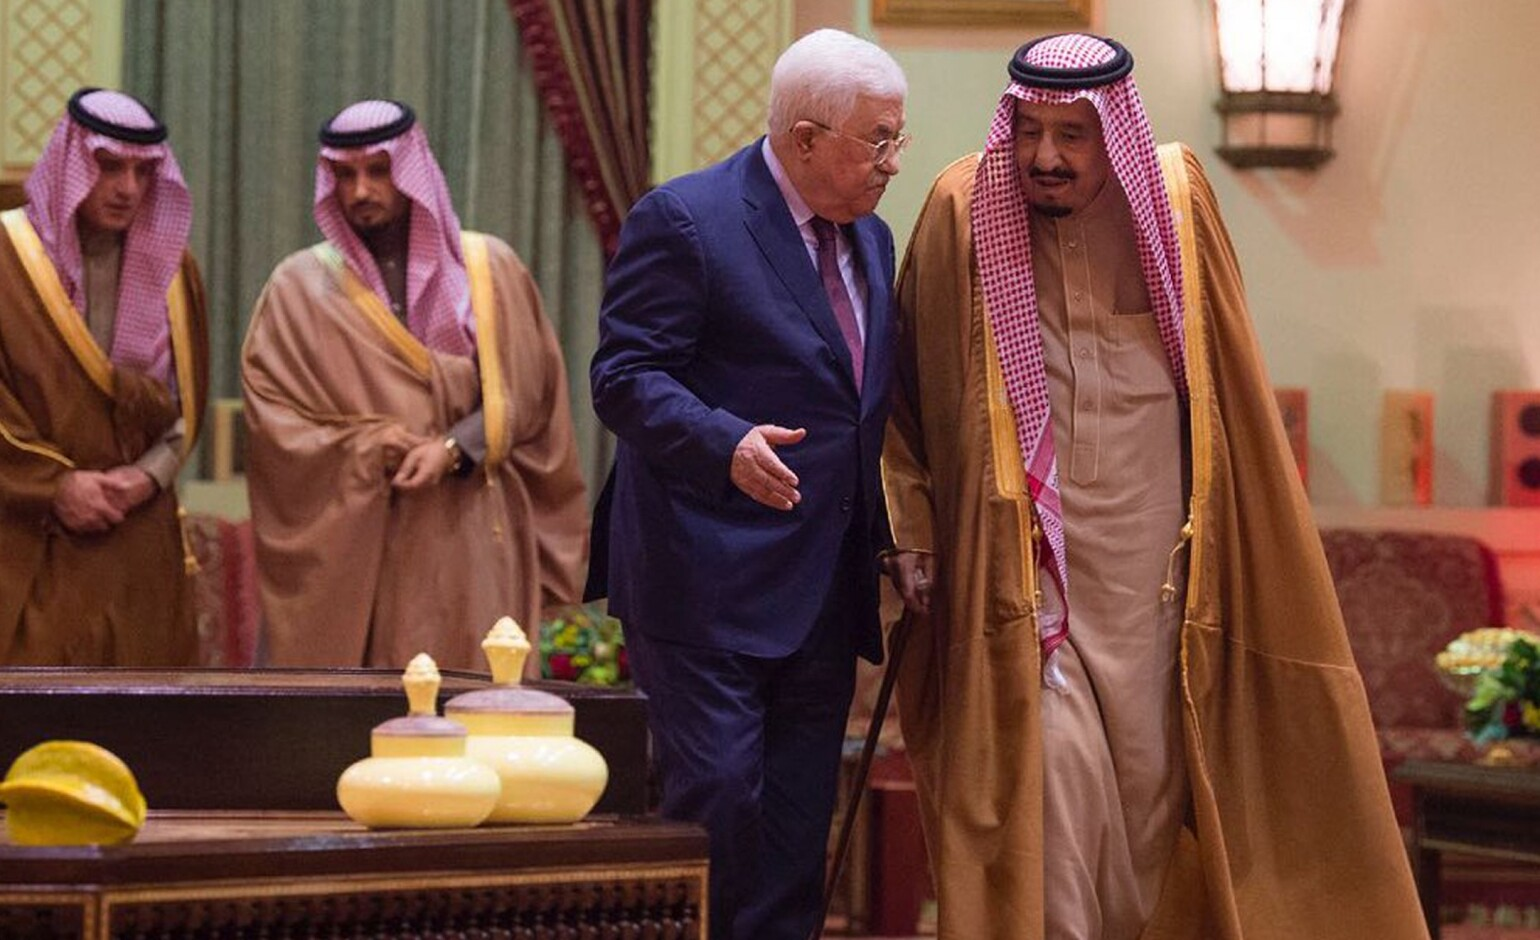 Saudi Arabia calls for 'coexistence' in the Middle East following Abraham Accords